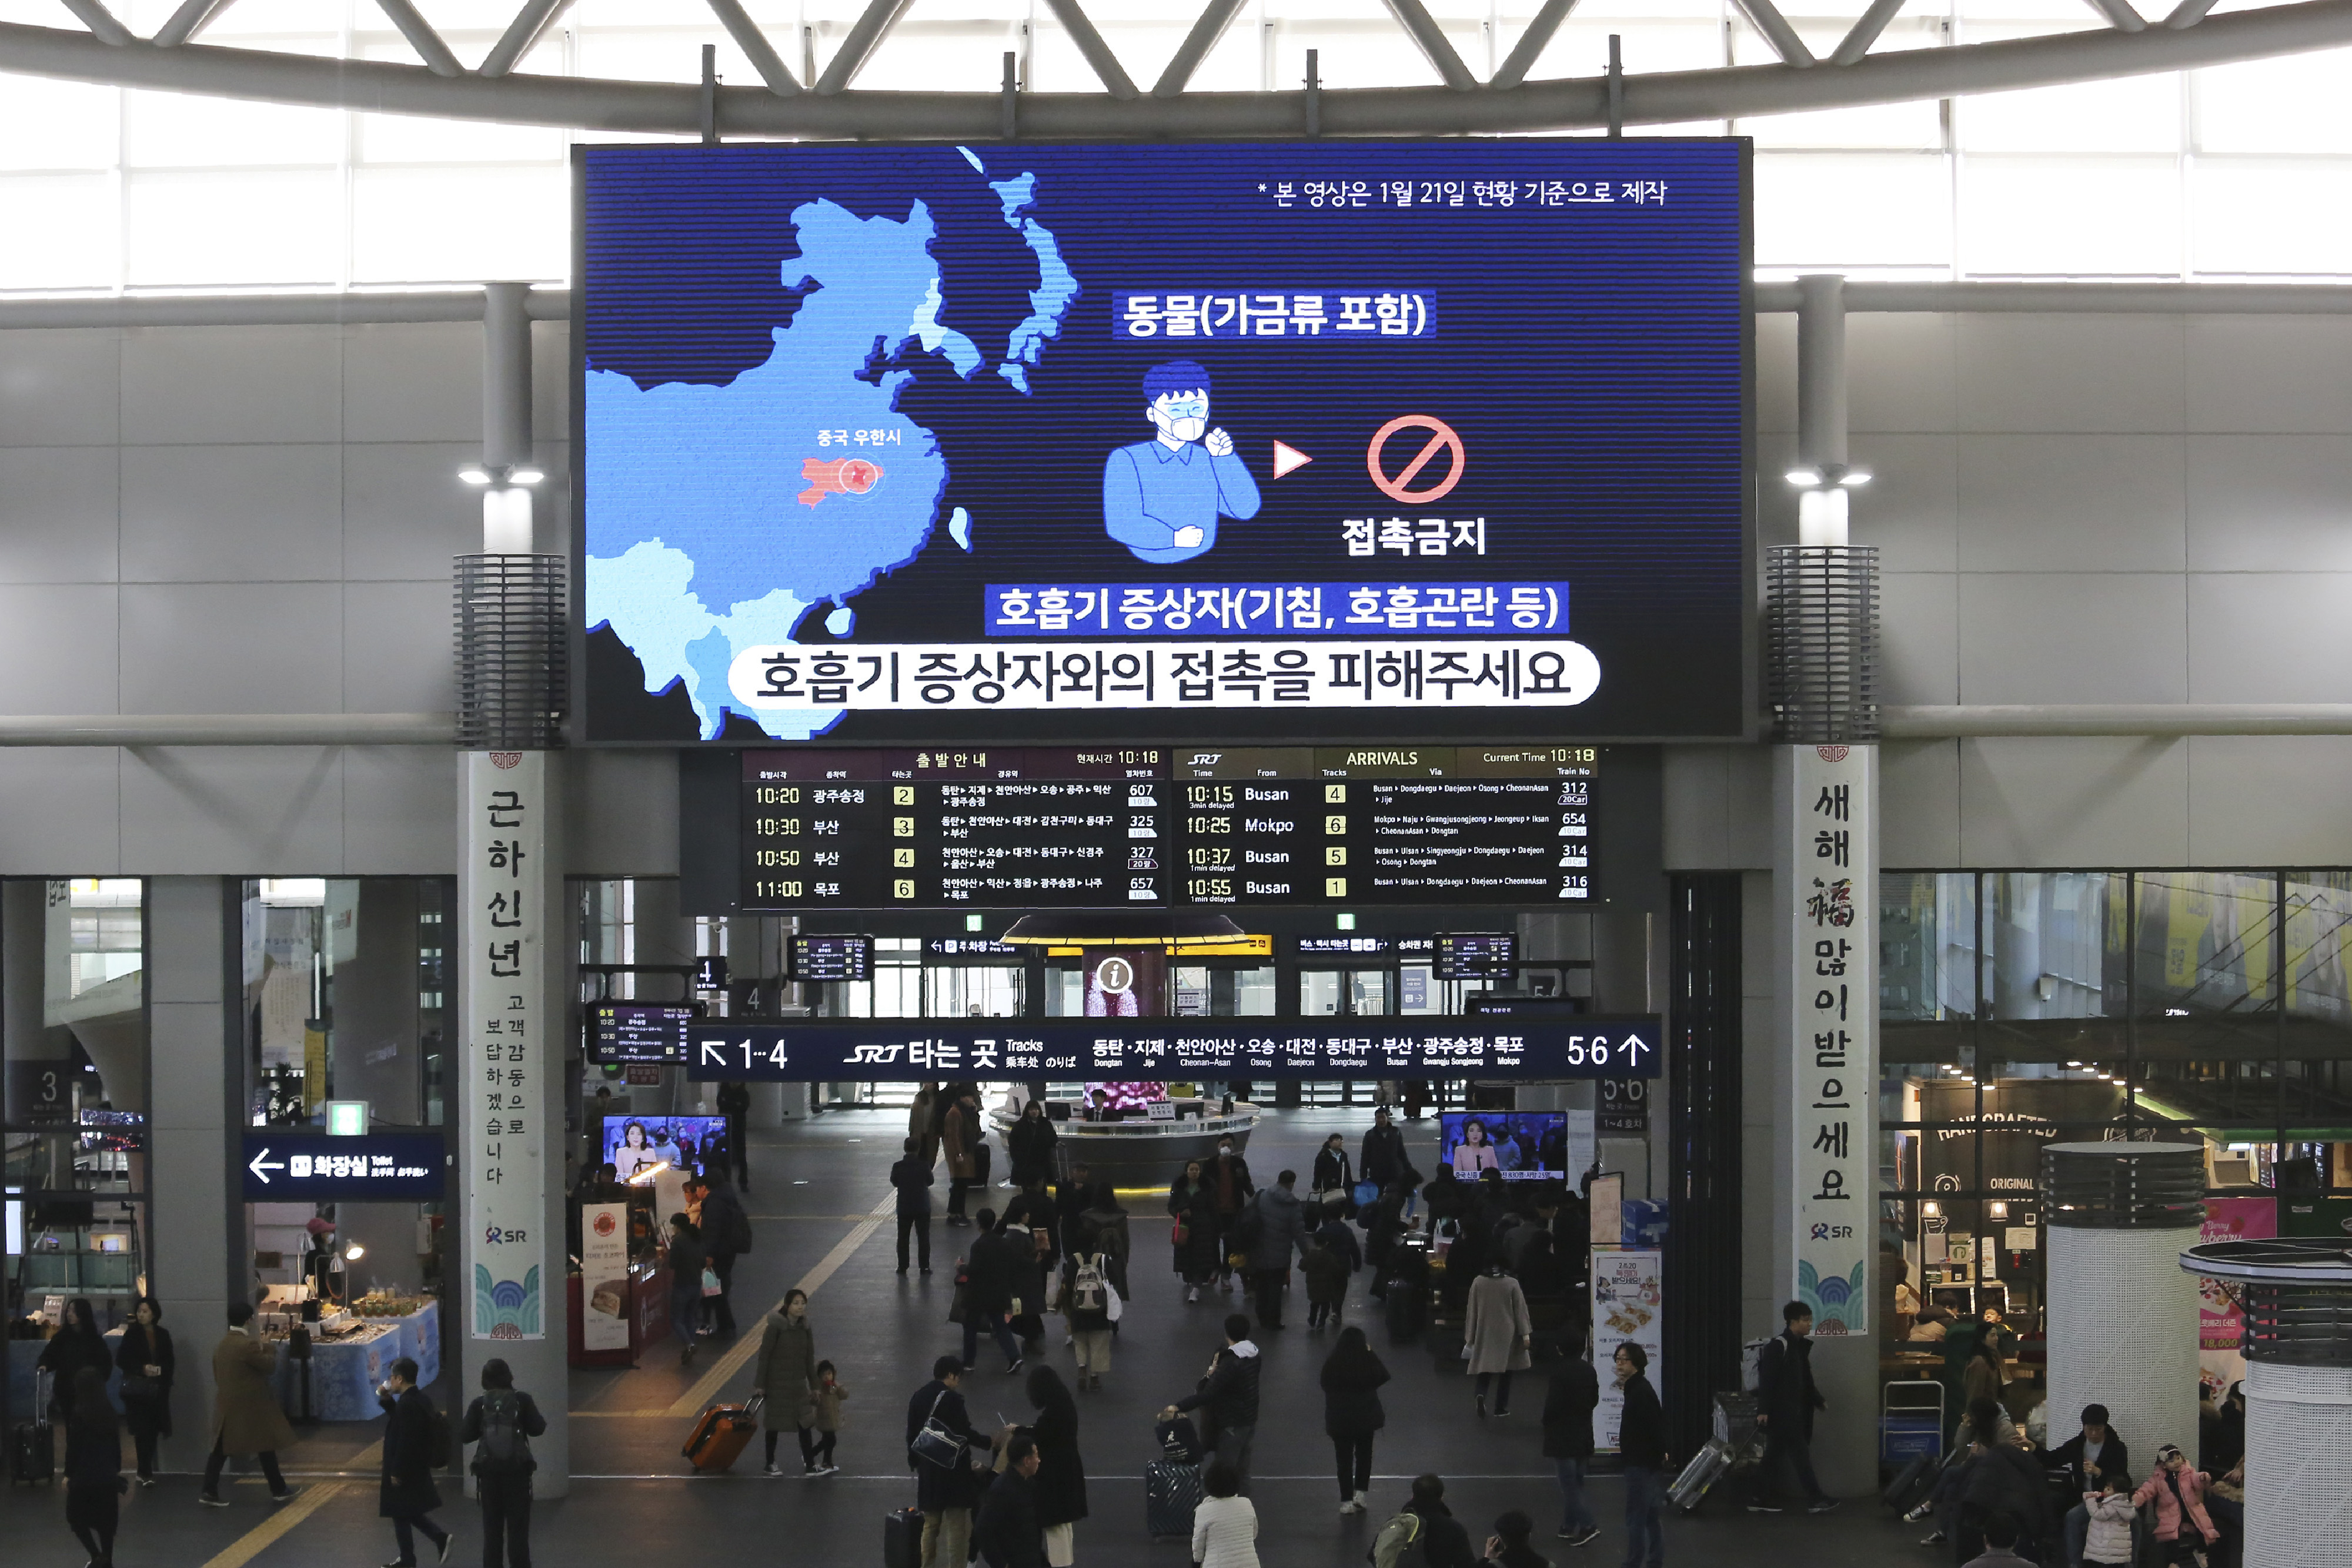 More airports screening passengers amid China virus outbreak